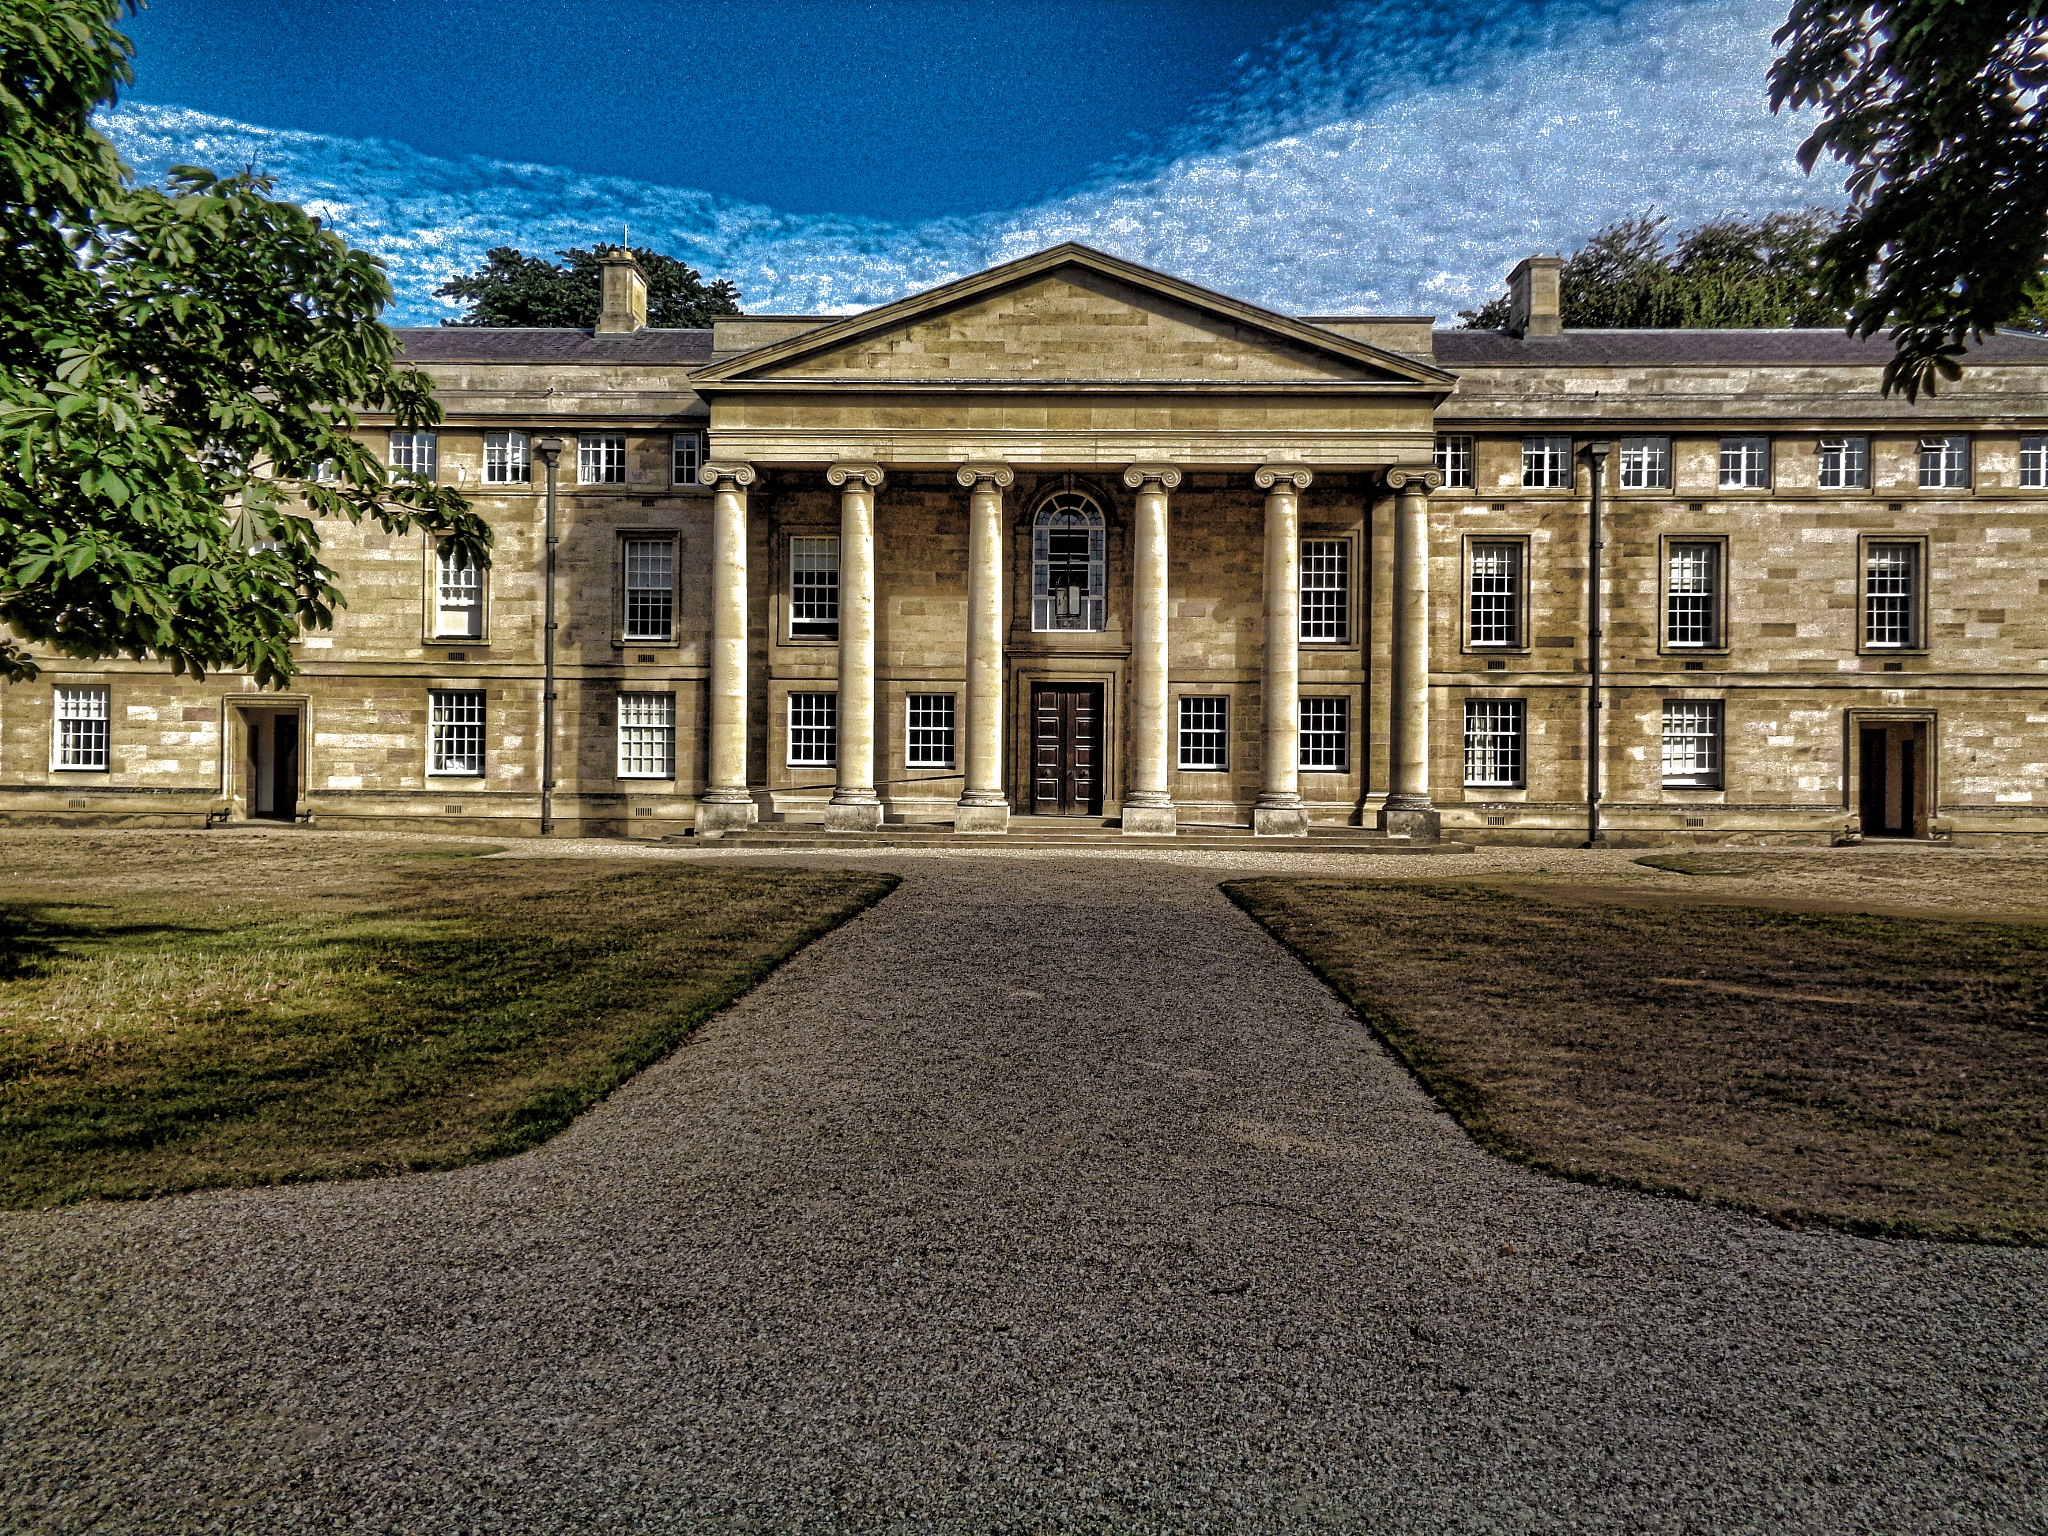 Downing College by Simon Hill